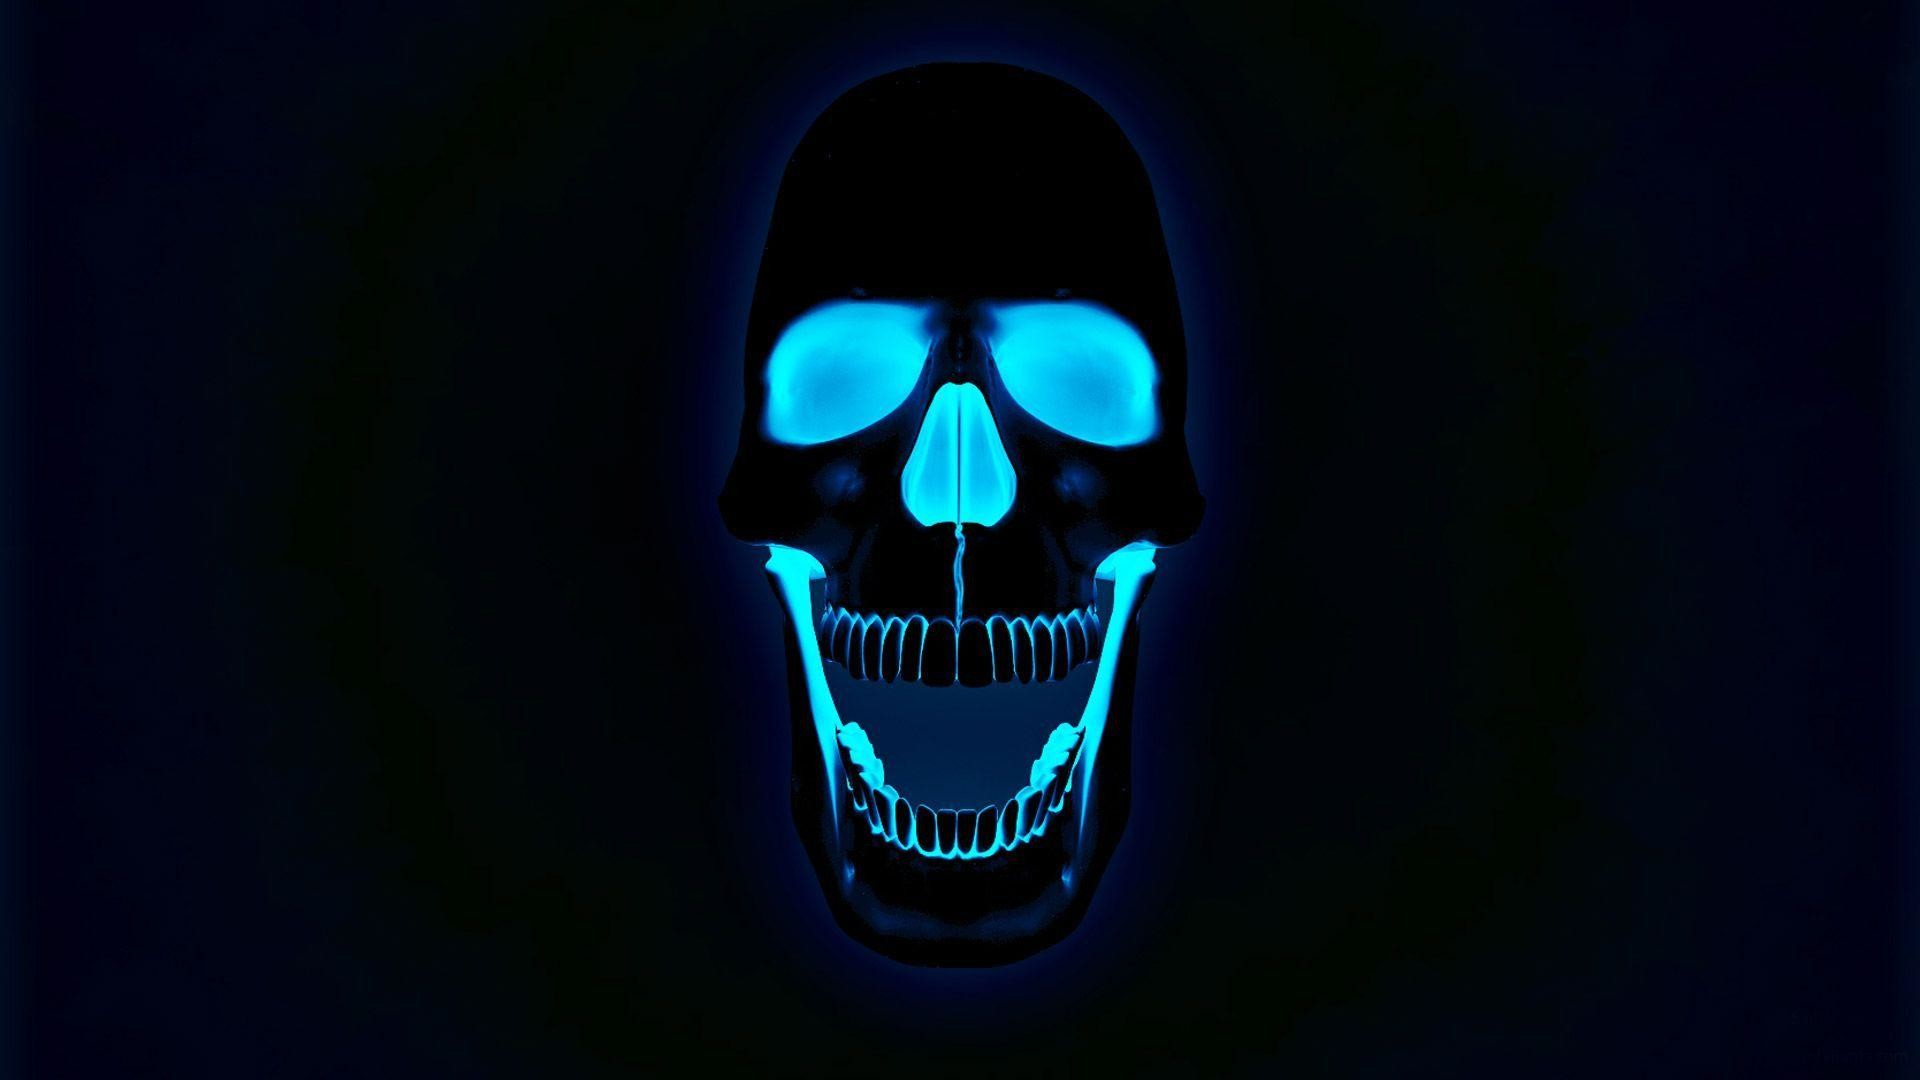 Res: 1920x1080, Black Punisher Skull Widescreen Wallpaper HD - dlwallhd.com